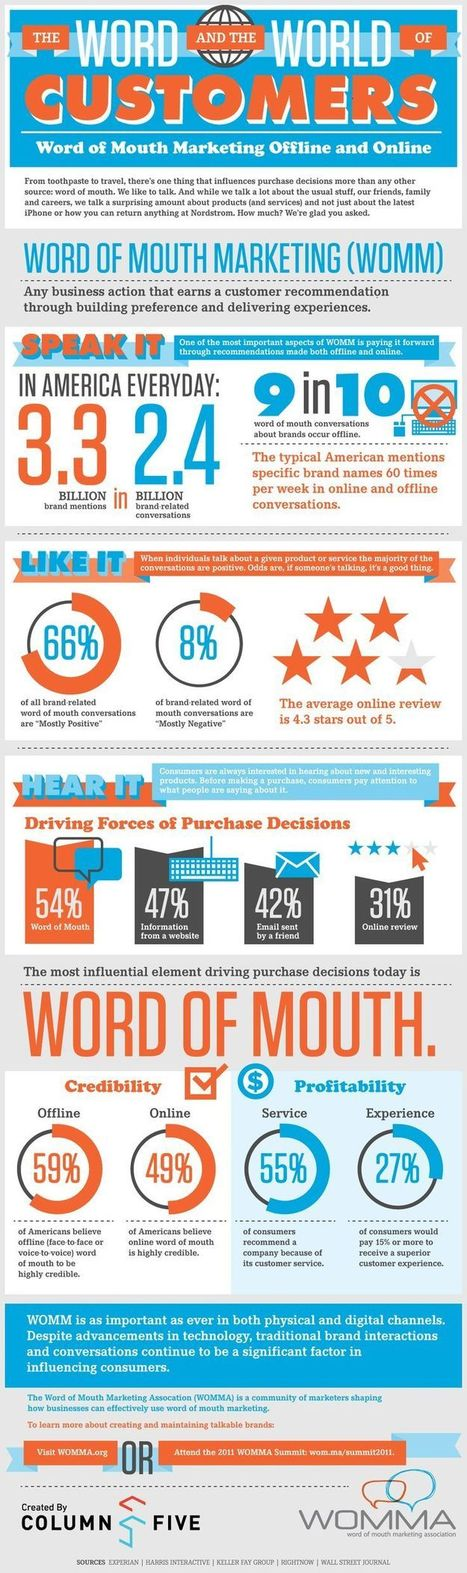 WOM and i like it - BlogsRelease | Infographic news | Scoop.it